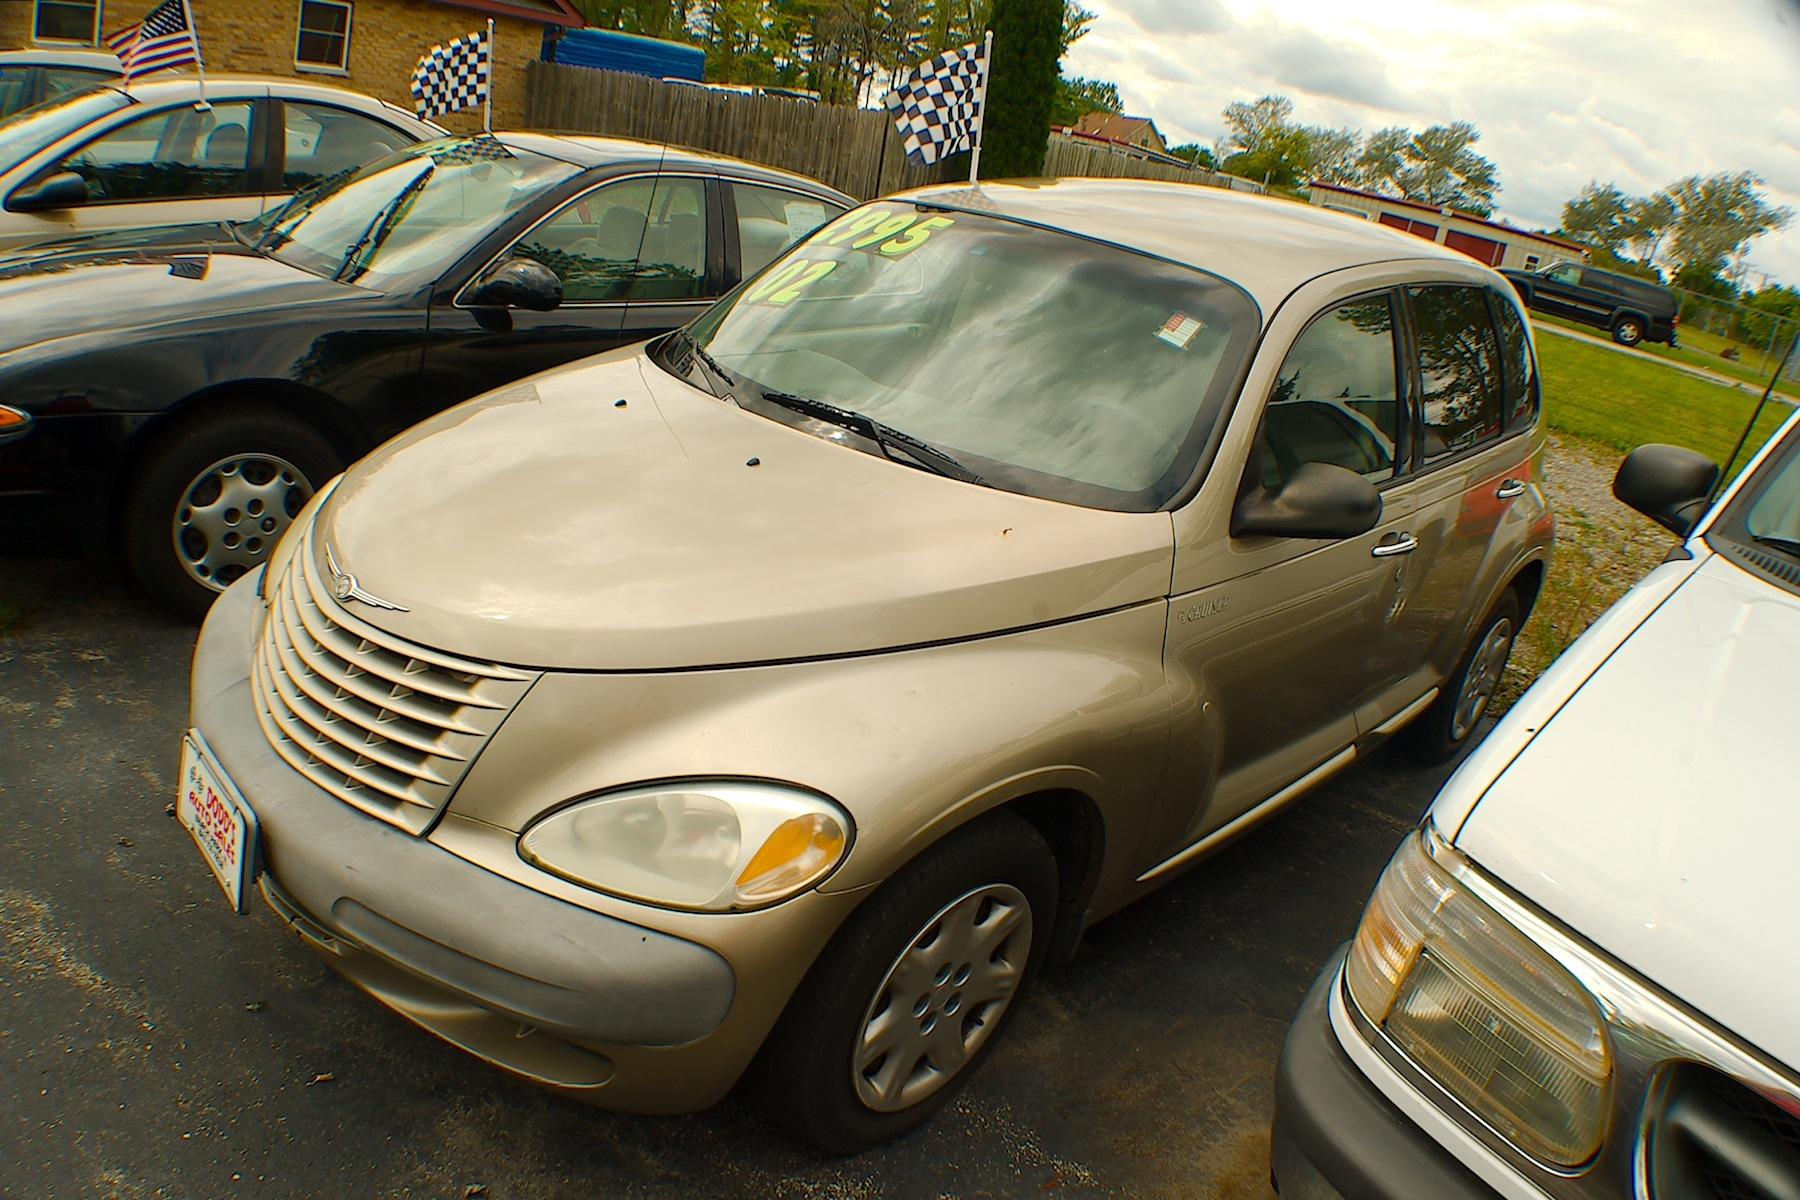 2002 Chrysler PT Cruiser Sand Wagon Used Car Sale Antioch Zion Waukegan Lake County Illinois